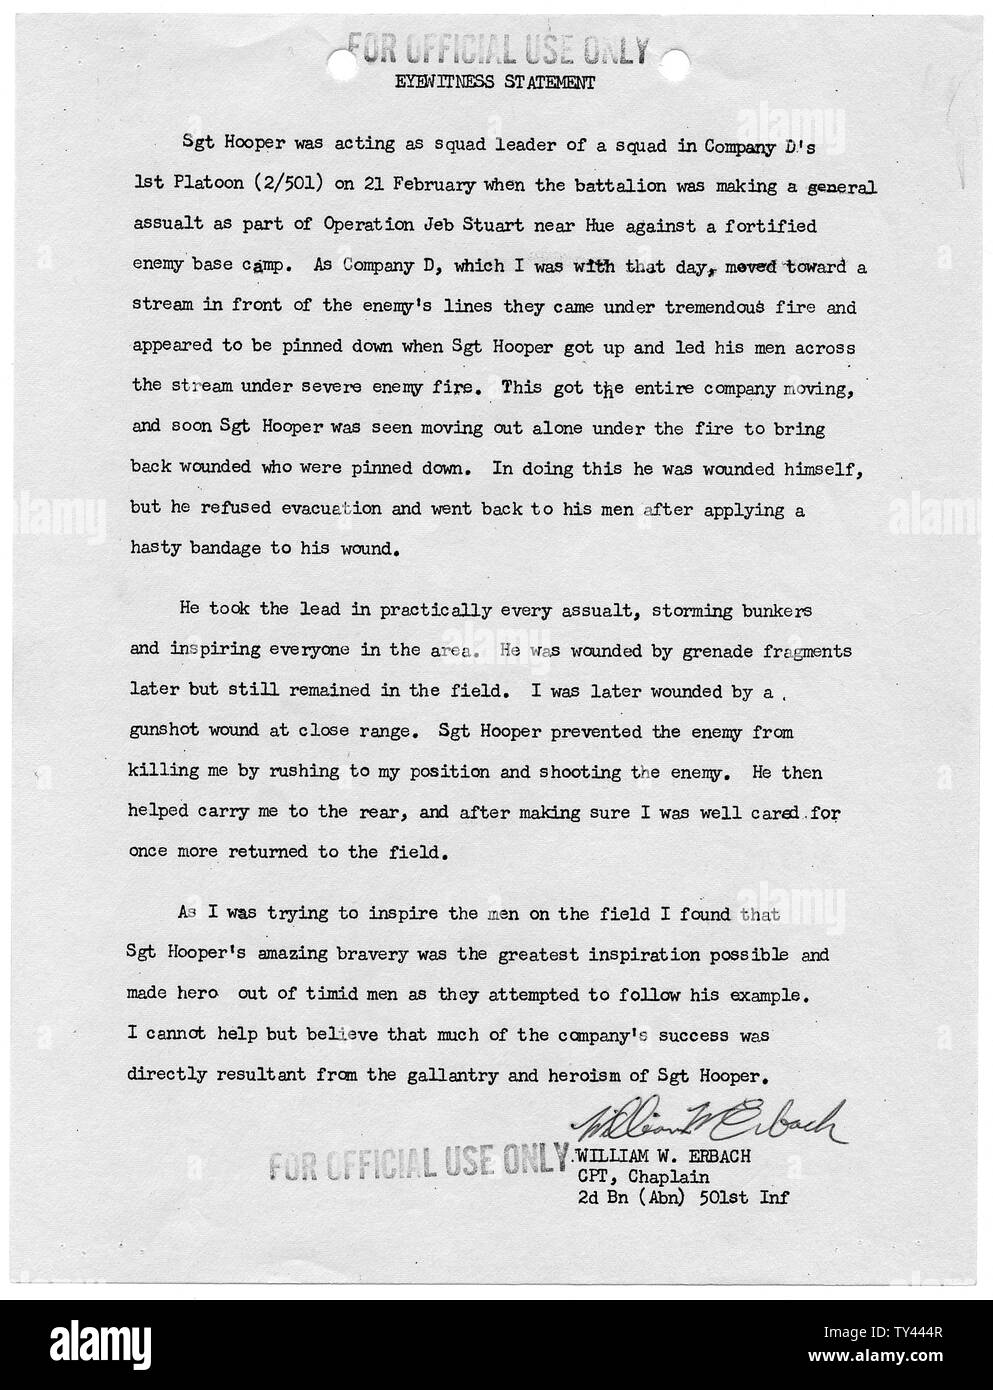 Eyewitness Statement of William W. Erbach, Company D, Second Battalion (Airborne), 501st Infantry, 101st Airborne Division; Scope and content:  This eyewitness statement contains evidence of the actions of Staff Sergeant Joe R. Hooper, who distinguished himself on 21 February 1968 in the battle of Hue, Republic of Vietnam. As a result of this statement, and statements of others, Staff Sergeant Hooper was awarded the Congressional Medal of Honor. In an extraordinary occurrence, Staff Sergeant Clifford C. Sims of the same company earned the Congressional Medal of Honor on the same day. - Stock Image